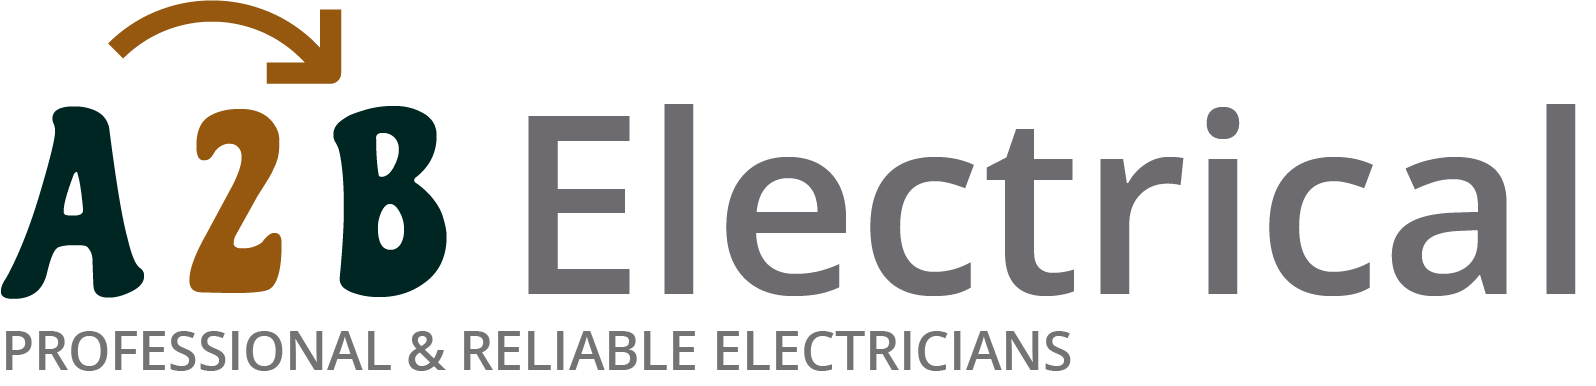 If you have electrical wiring problems in South Croydon, we can provide an electrician to have a look for you.